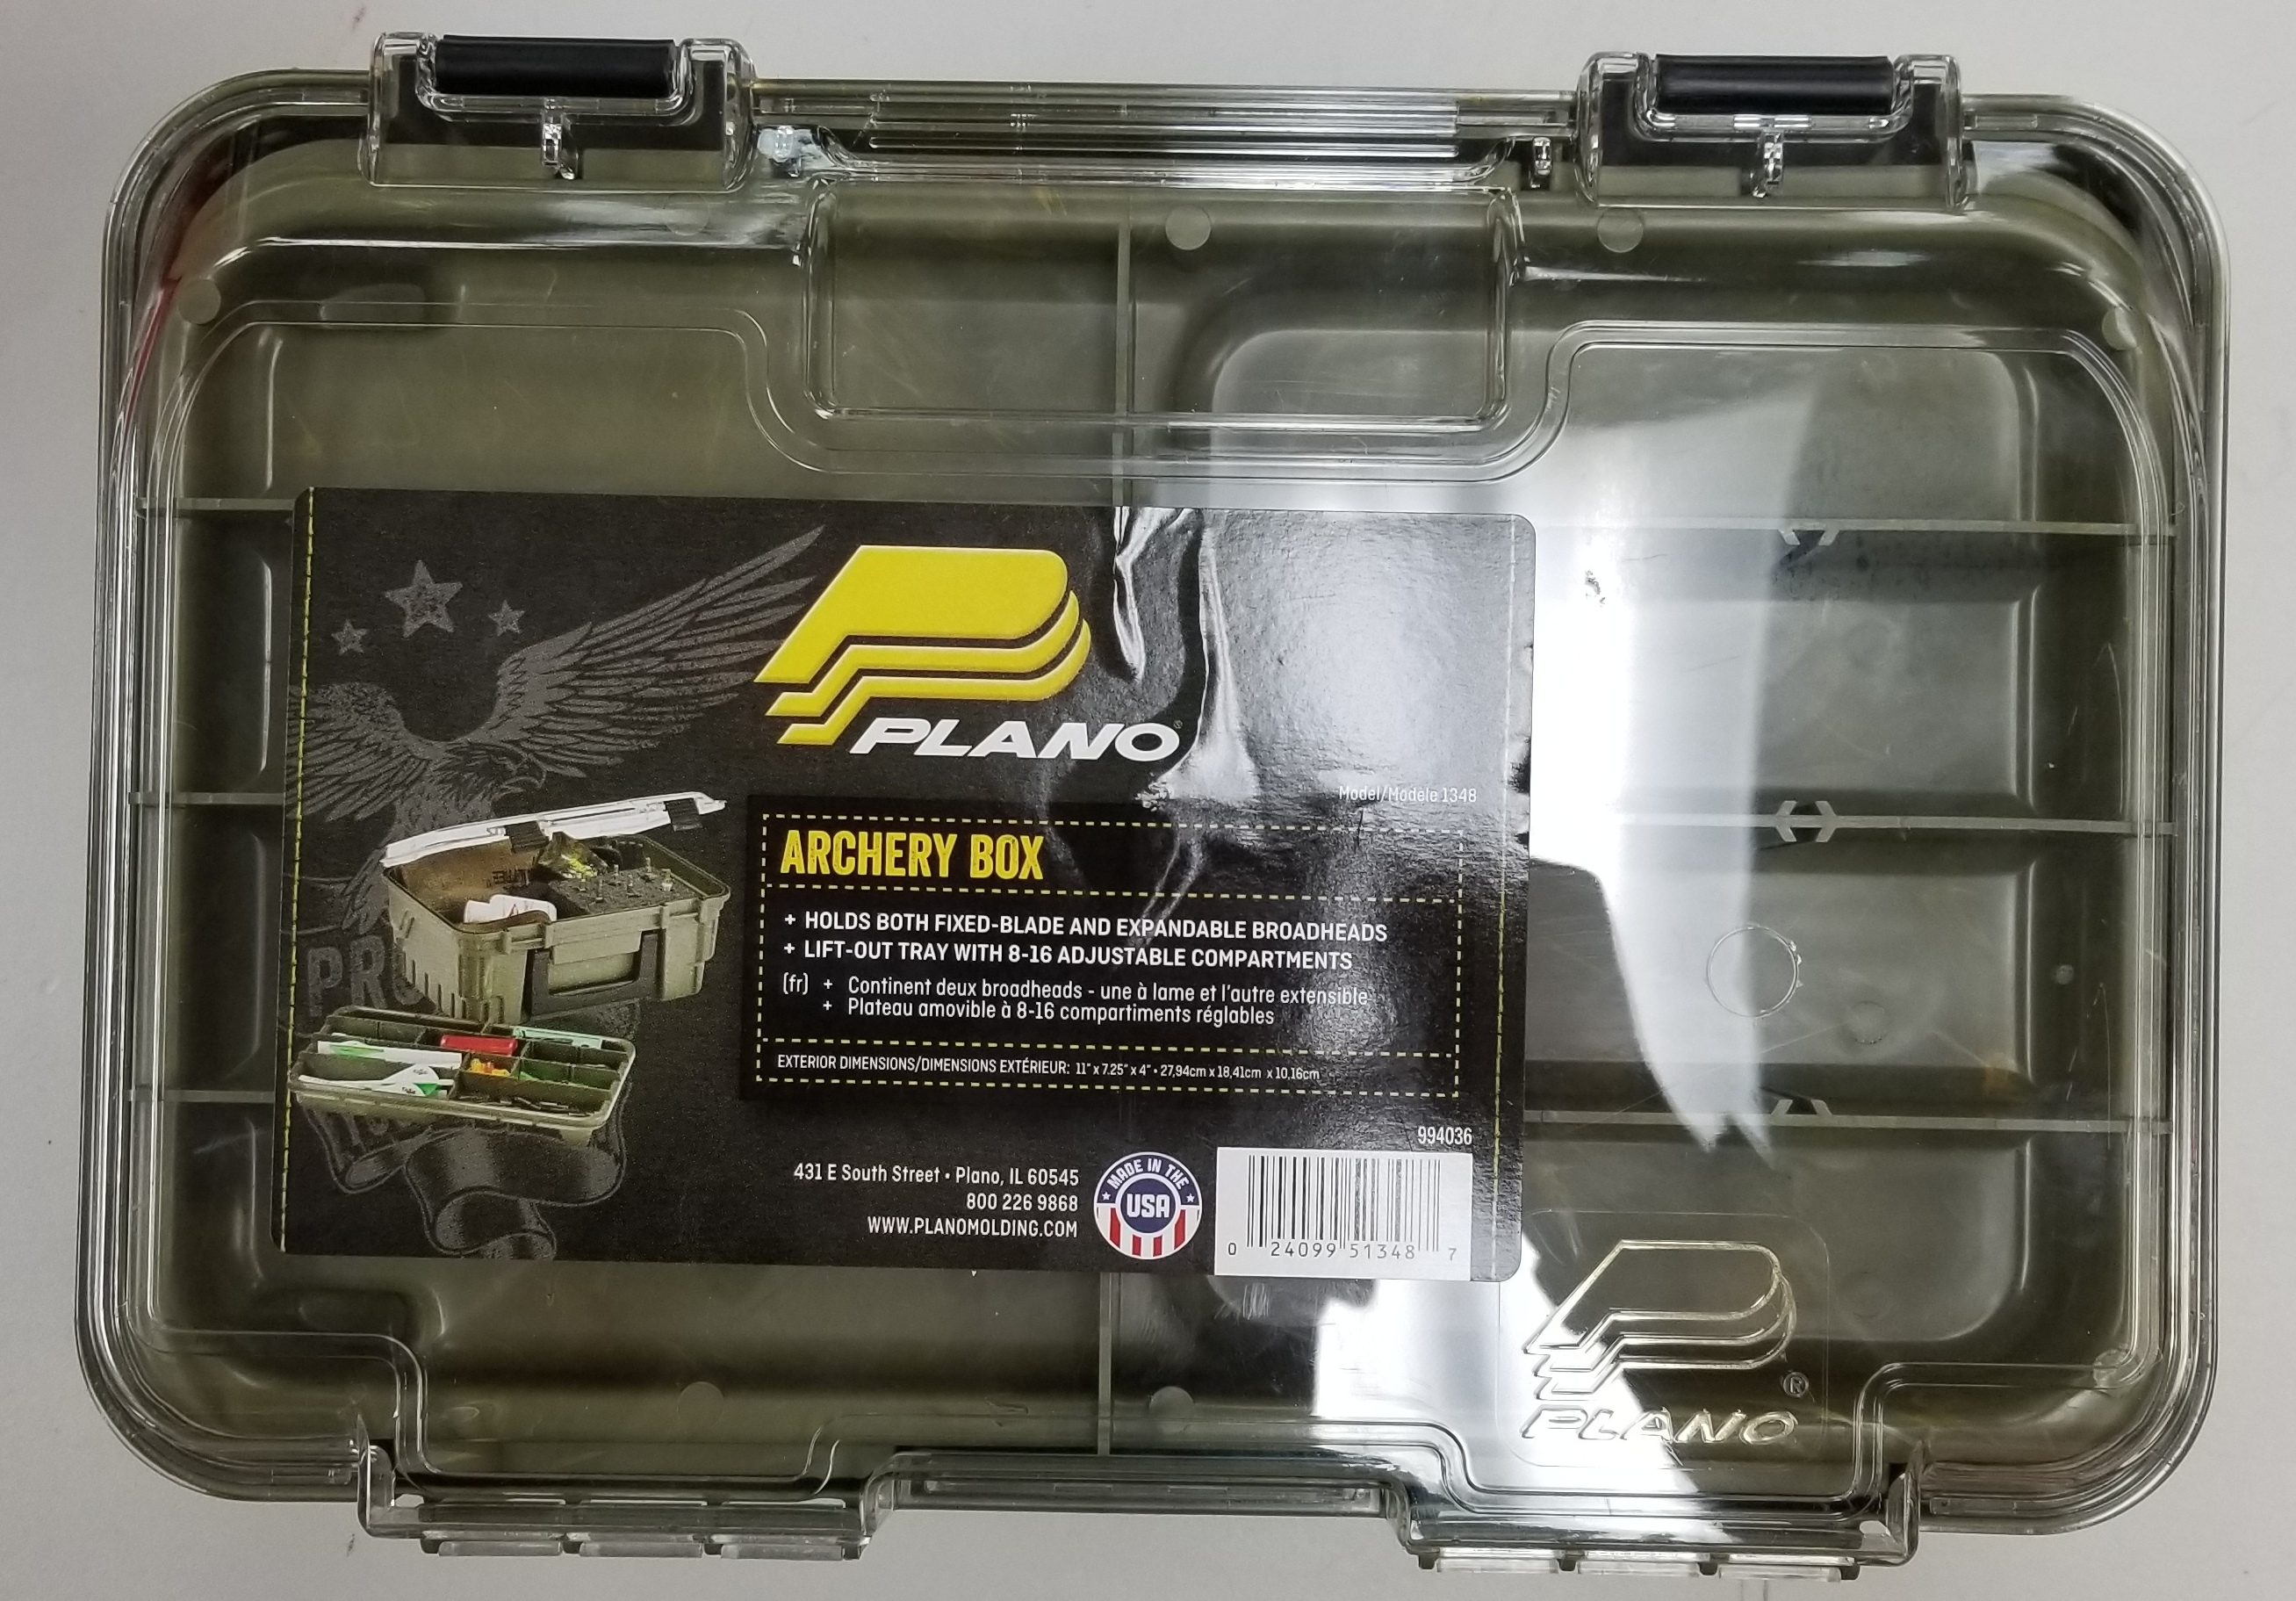 PLANO - ARCHERY BOX - TACKLE BOX SPORTING EQUIPMENT